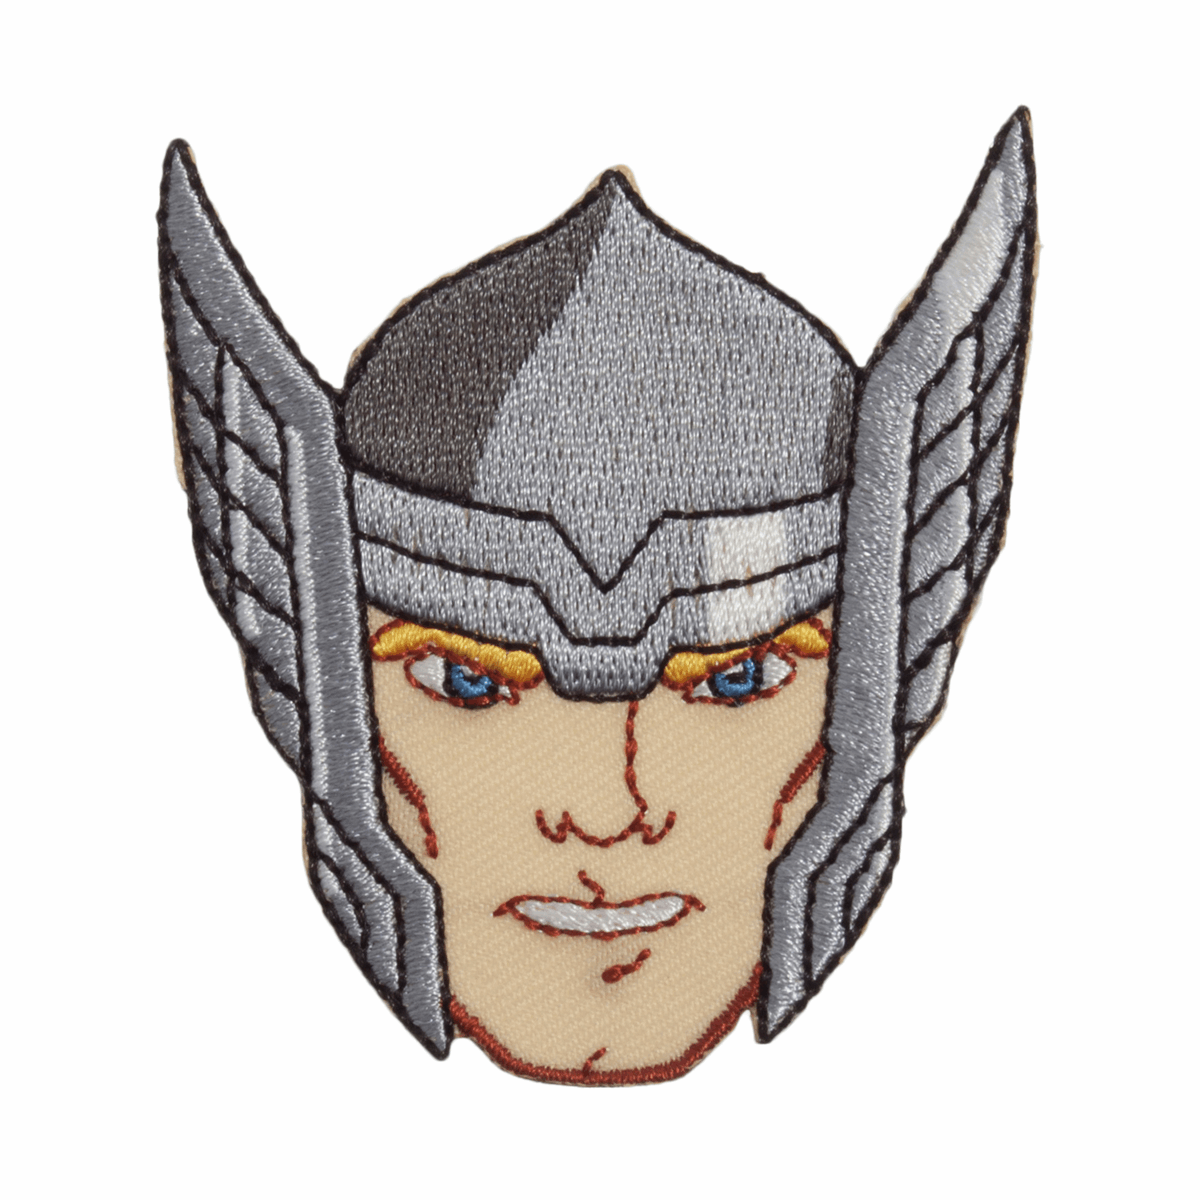 Picture of Embroidered Motif: The Avengers: Thor Face